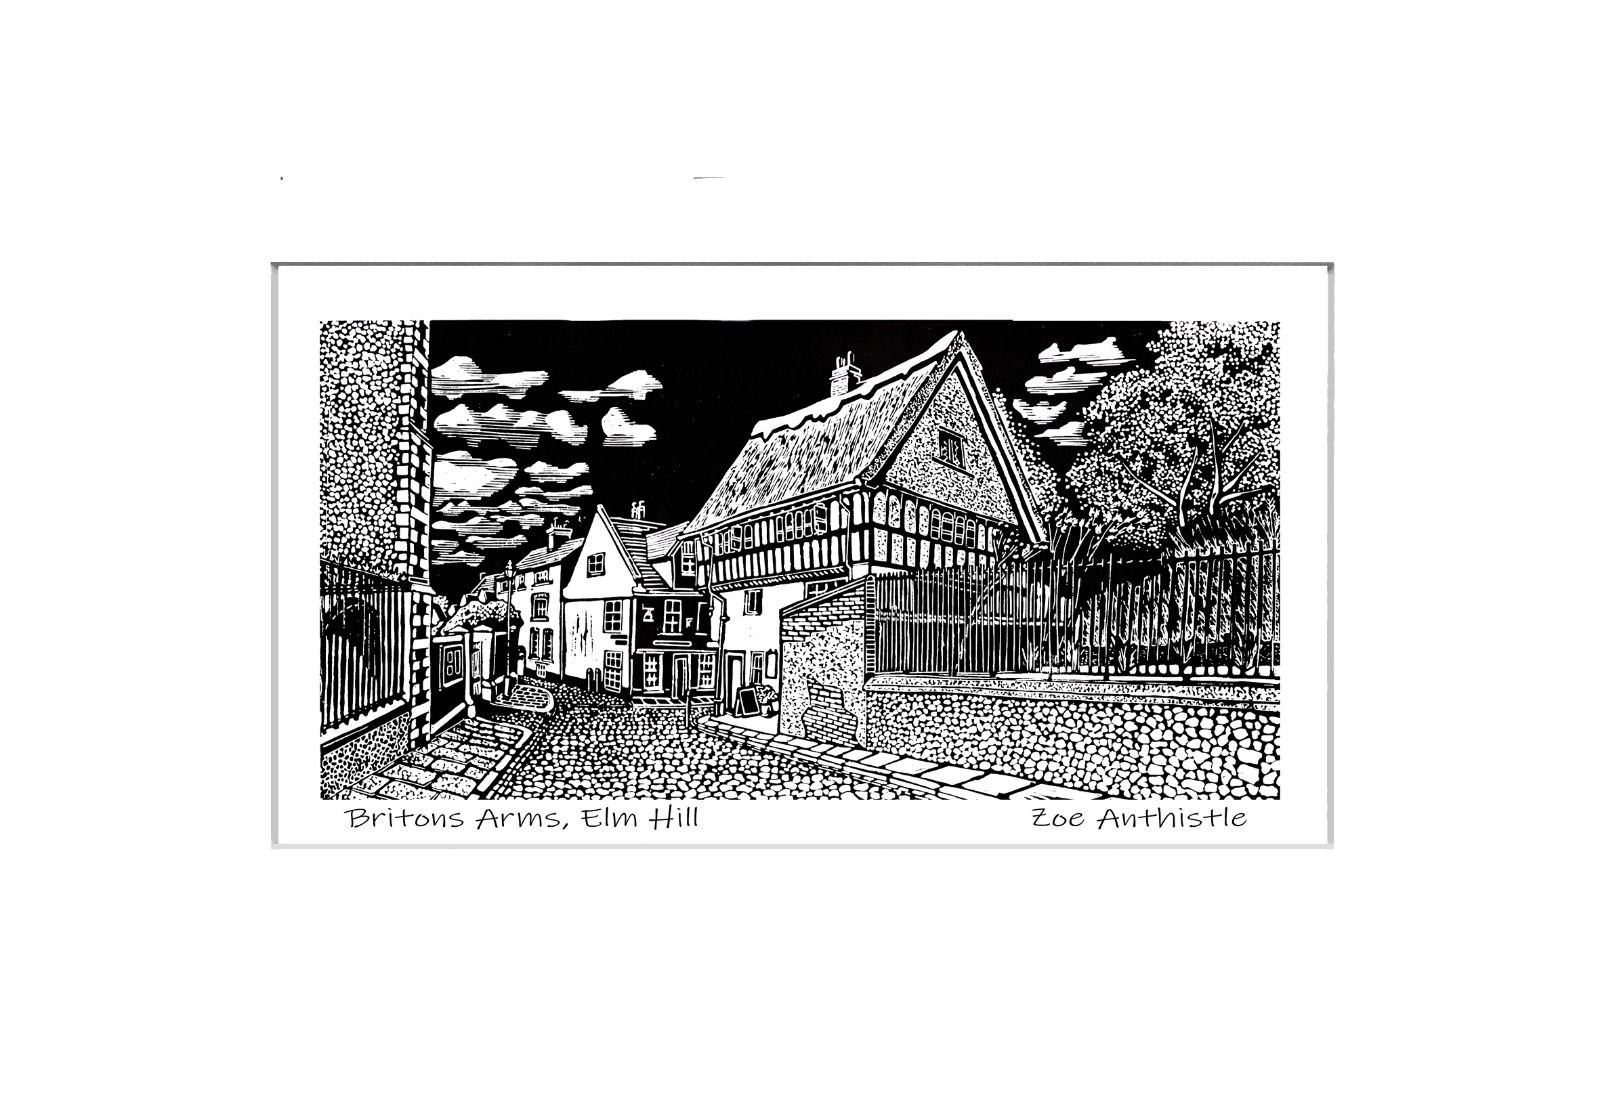 Britons Arms, Elm Hill